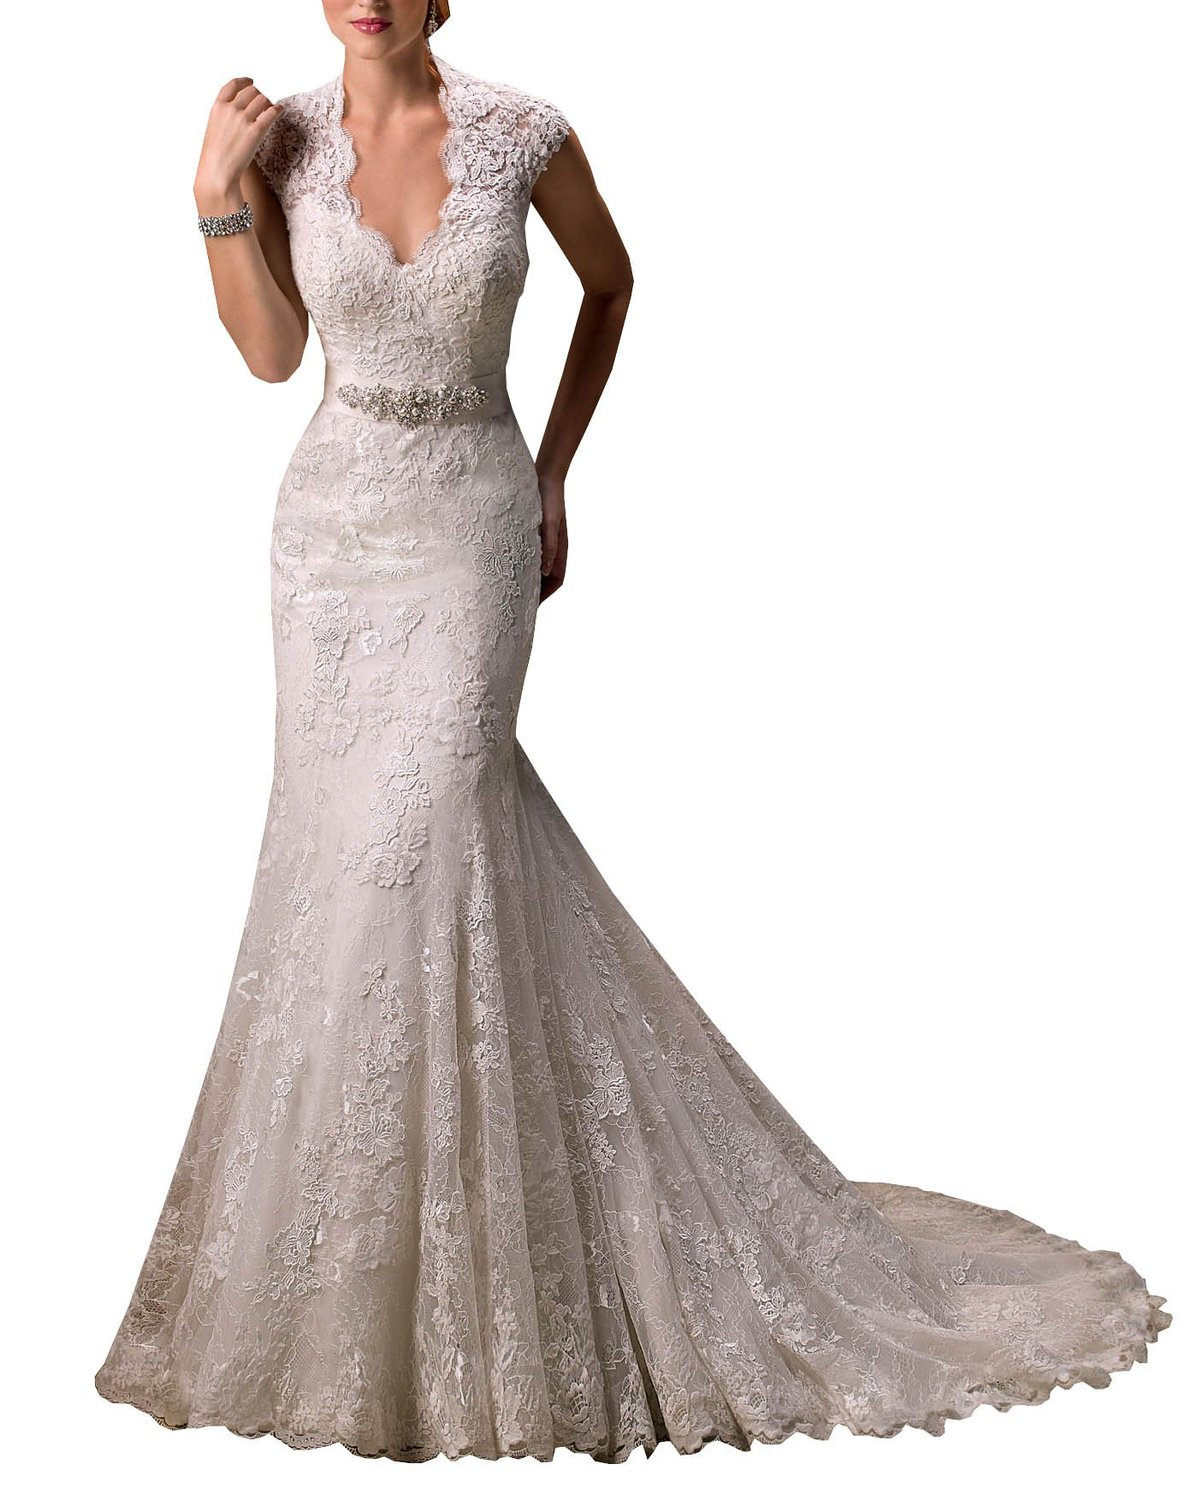 This #1 Best-selling Wedding Dress On Amazon Is Super